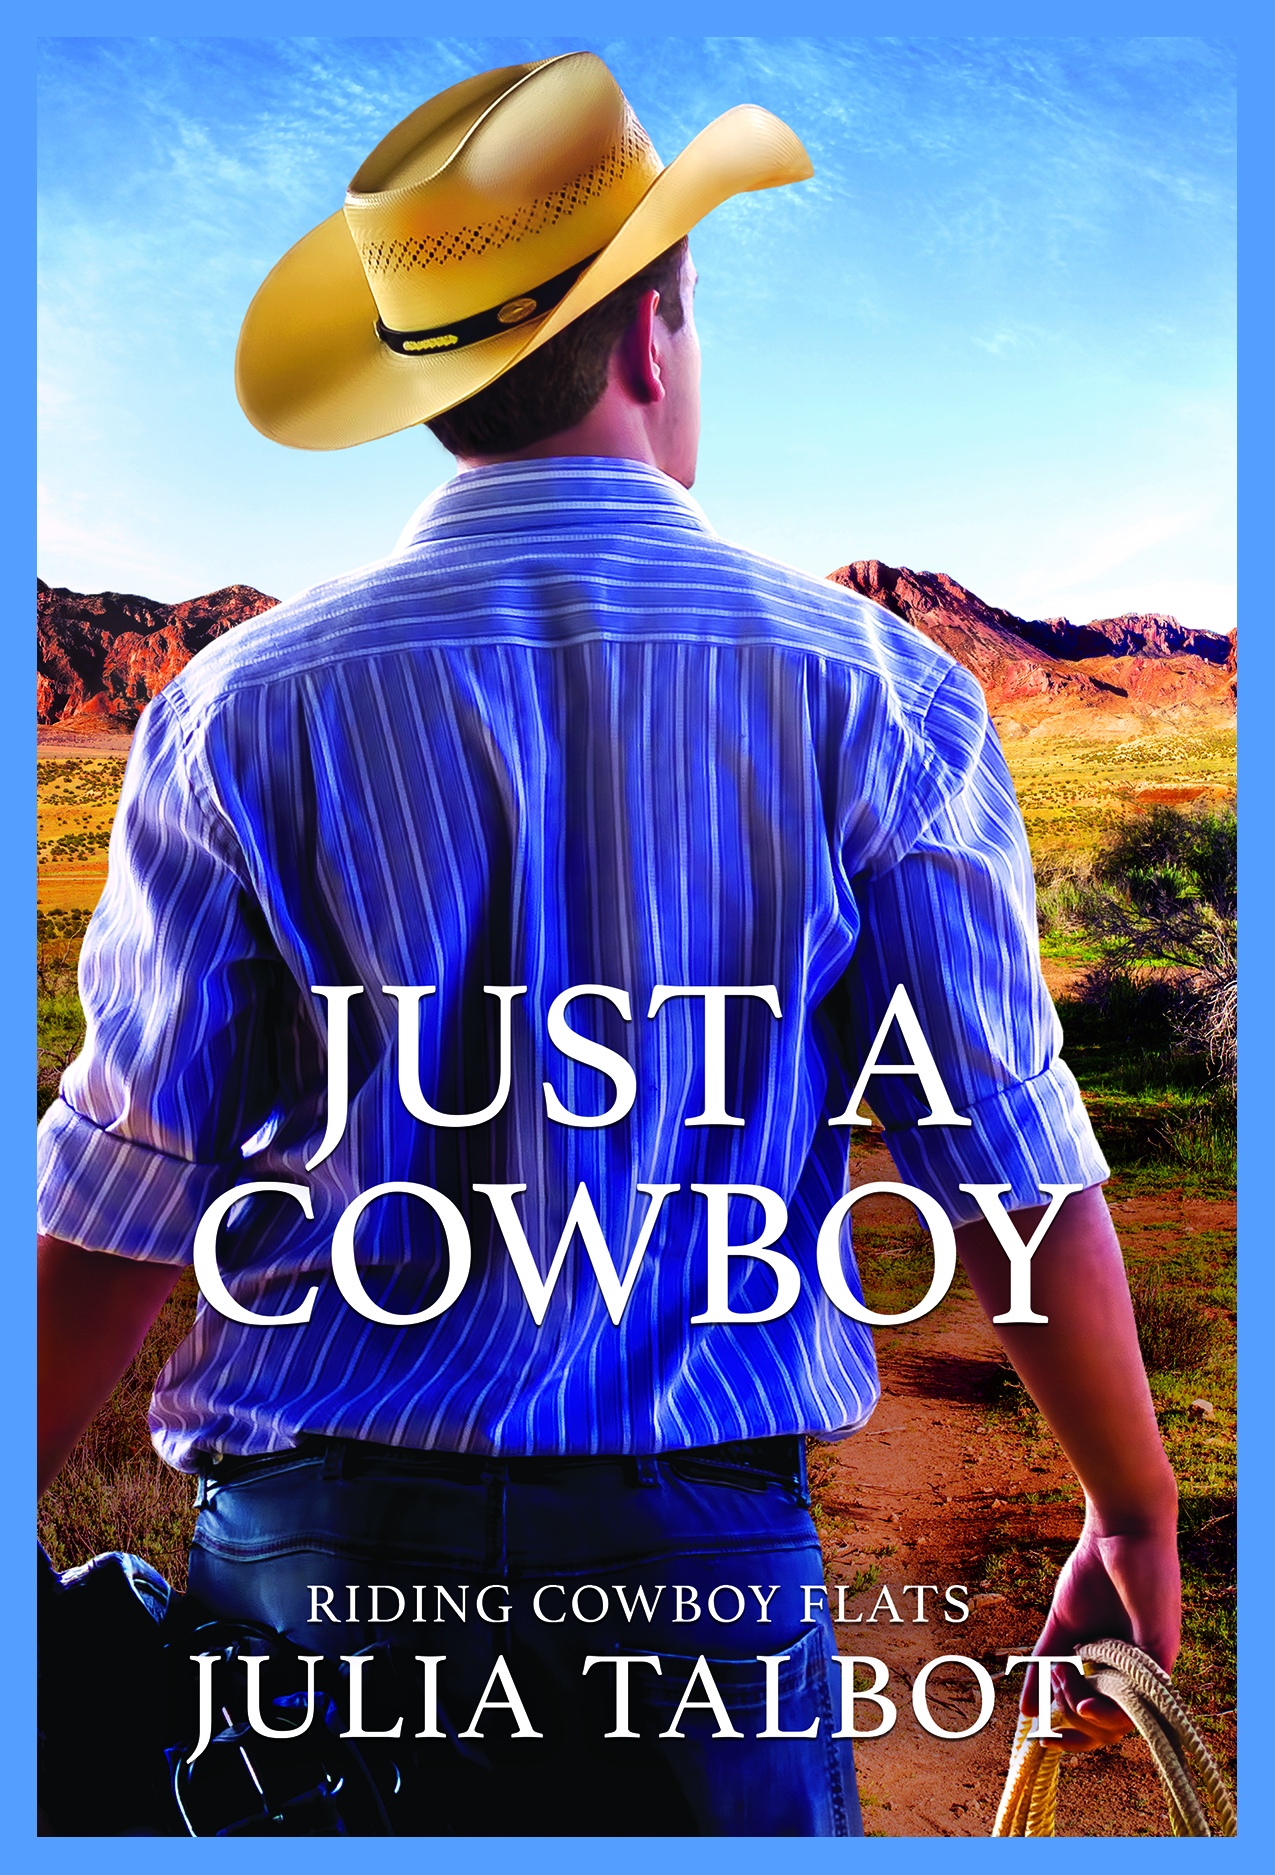 Just a Cowboy by Julia Talbot